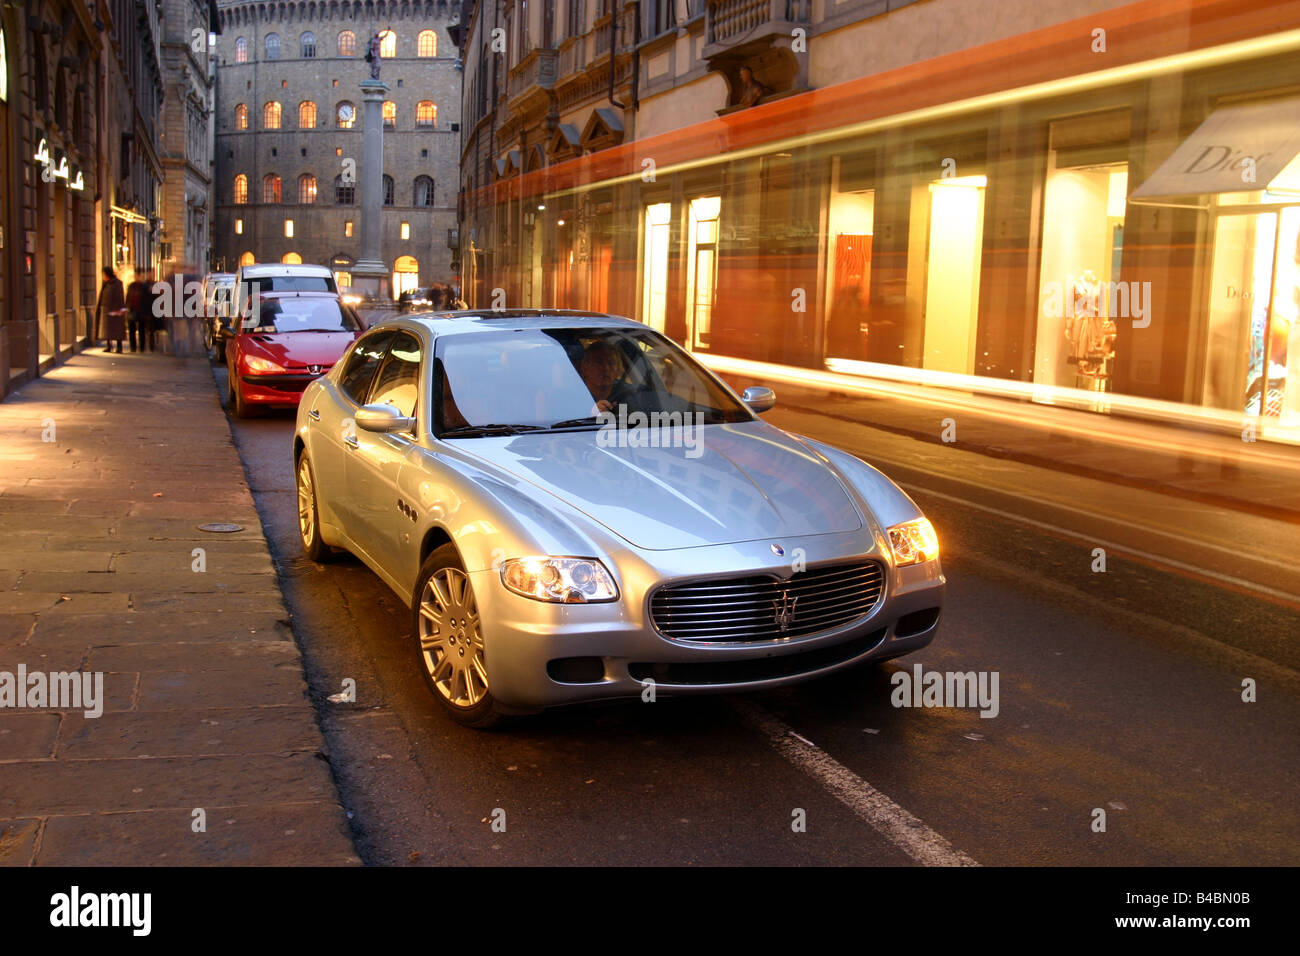 Car, Maserati Quattroporte, model year 2004-, Limousine, Luxury approx.s, silver, FGHDS, standing, upholding, diagonal - Stock Image